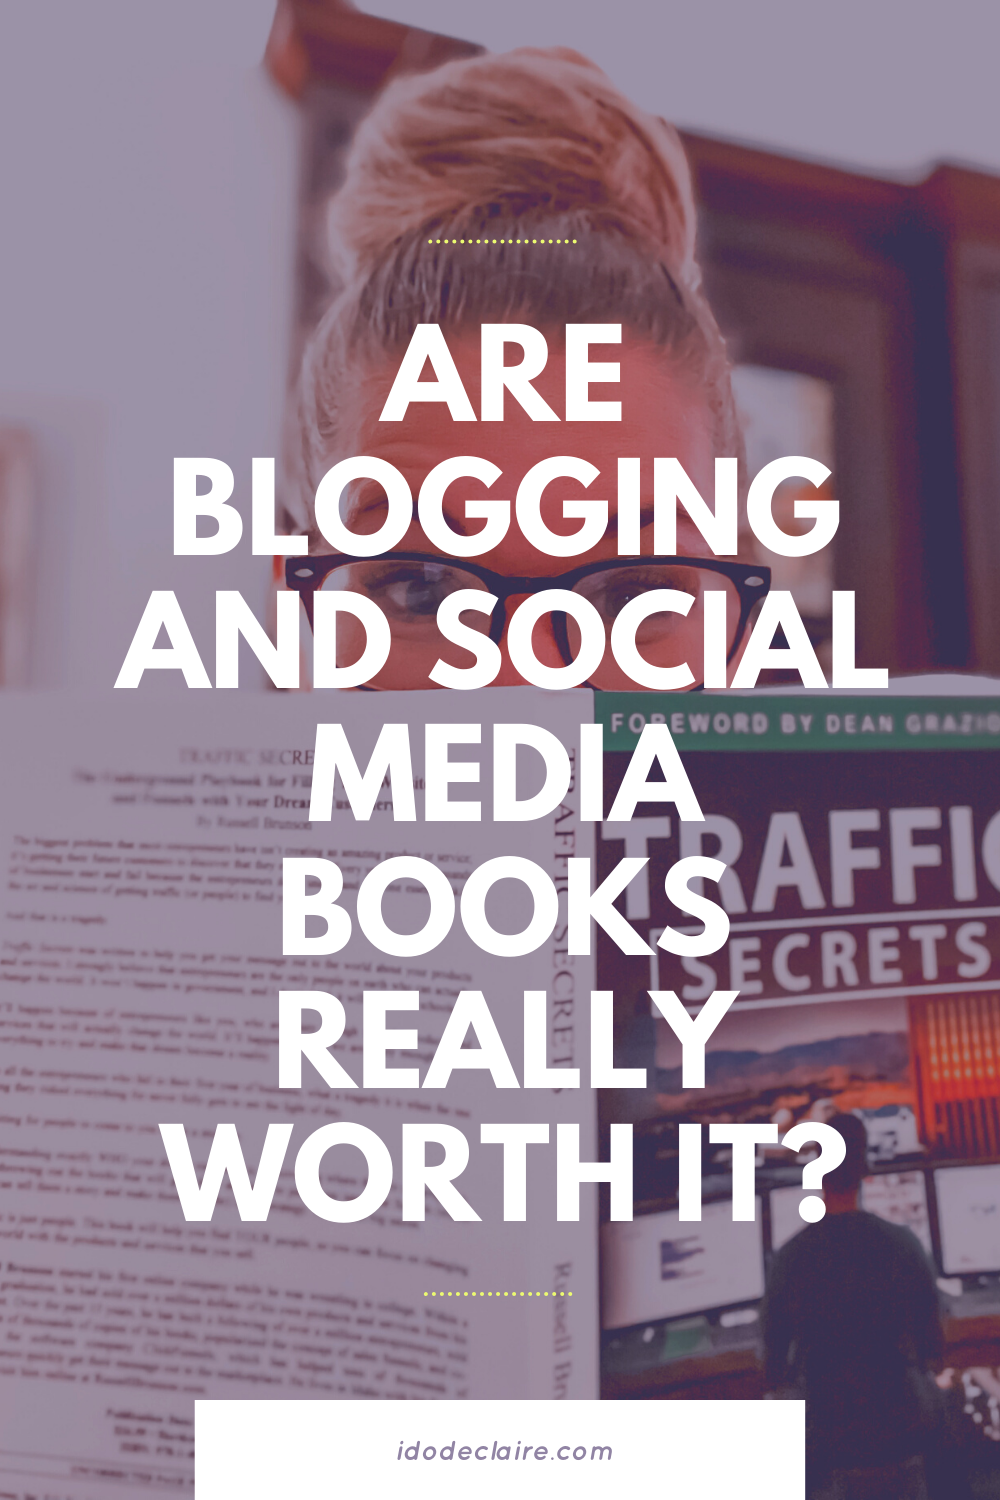 Are Blogging and Social Media Books Really Worth It?